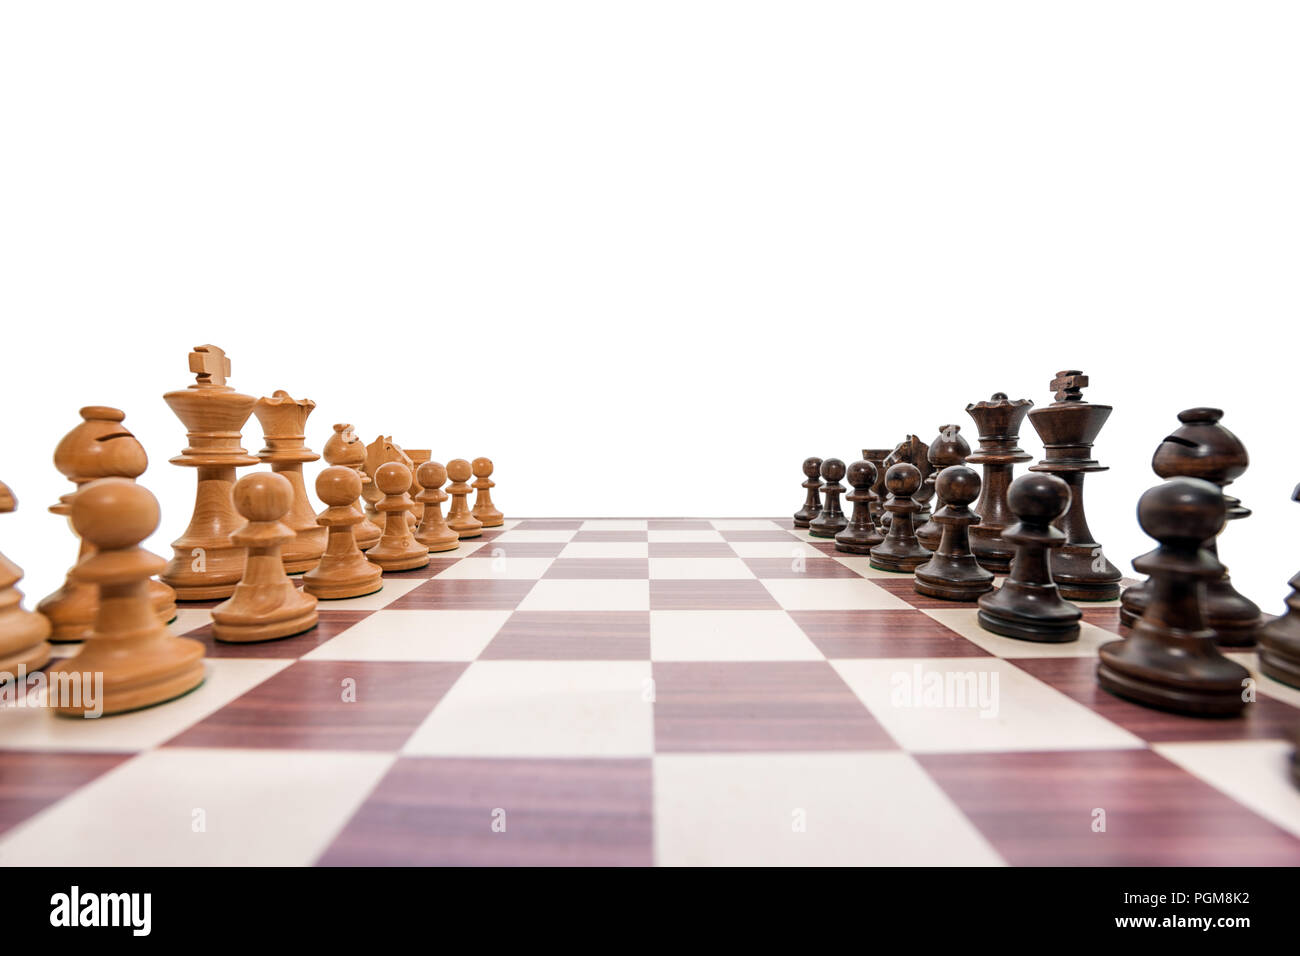 boxwood chessboard on white background wide angle shot - Stock Image